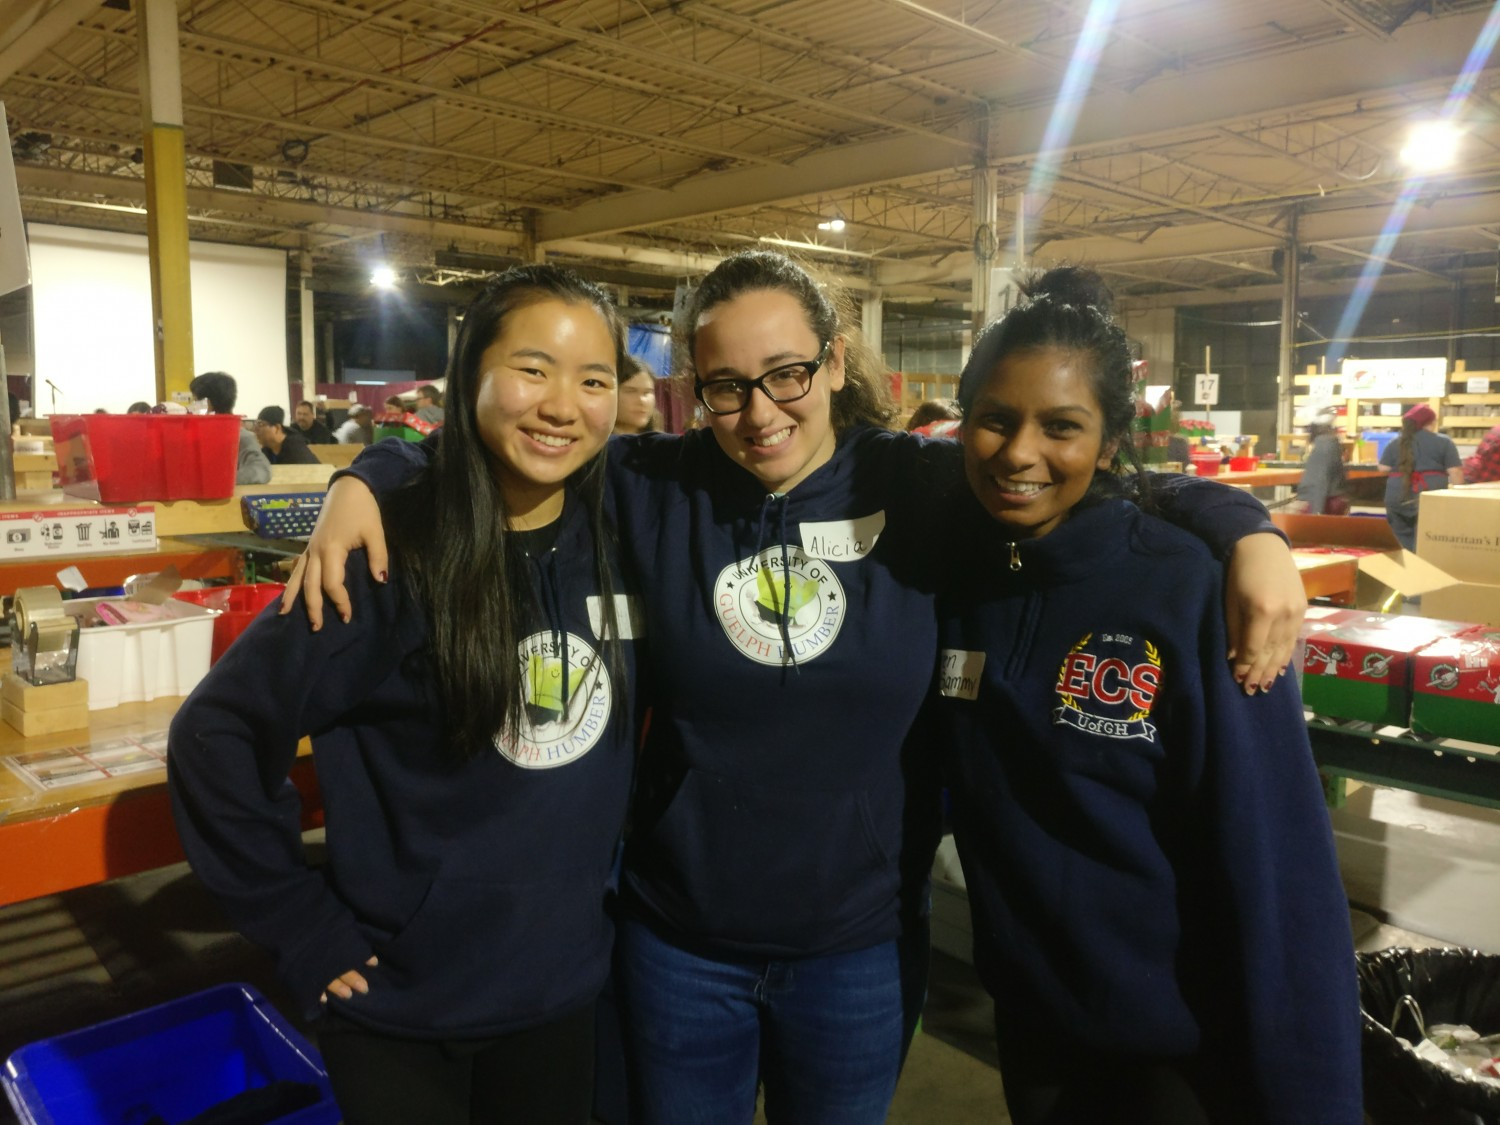 Students Carey Wong and Alicia Colabito along side Aren Sammy at the inspecting table in the warehouse of Operation Christmas Child.